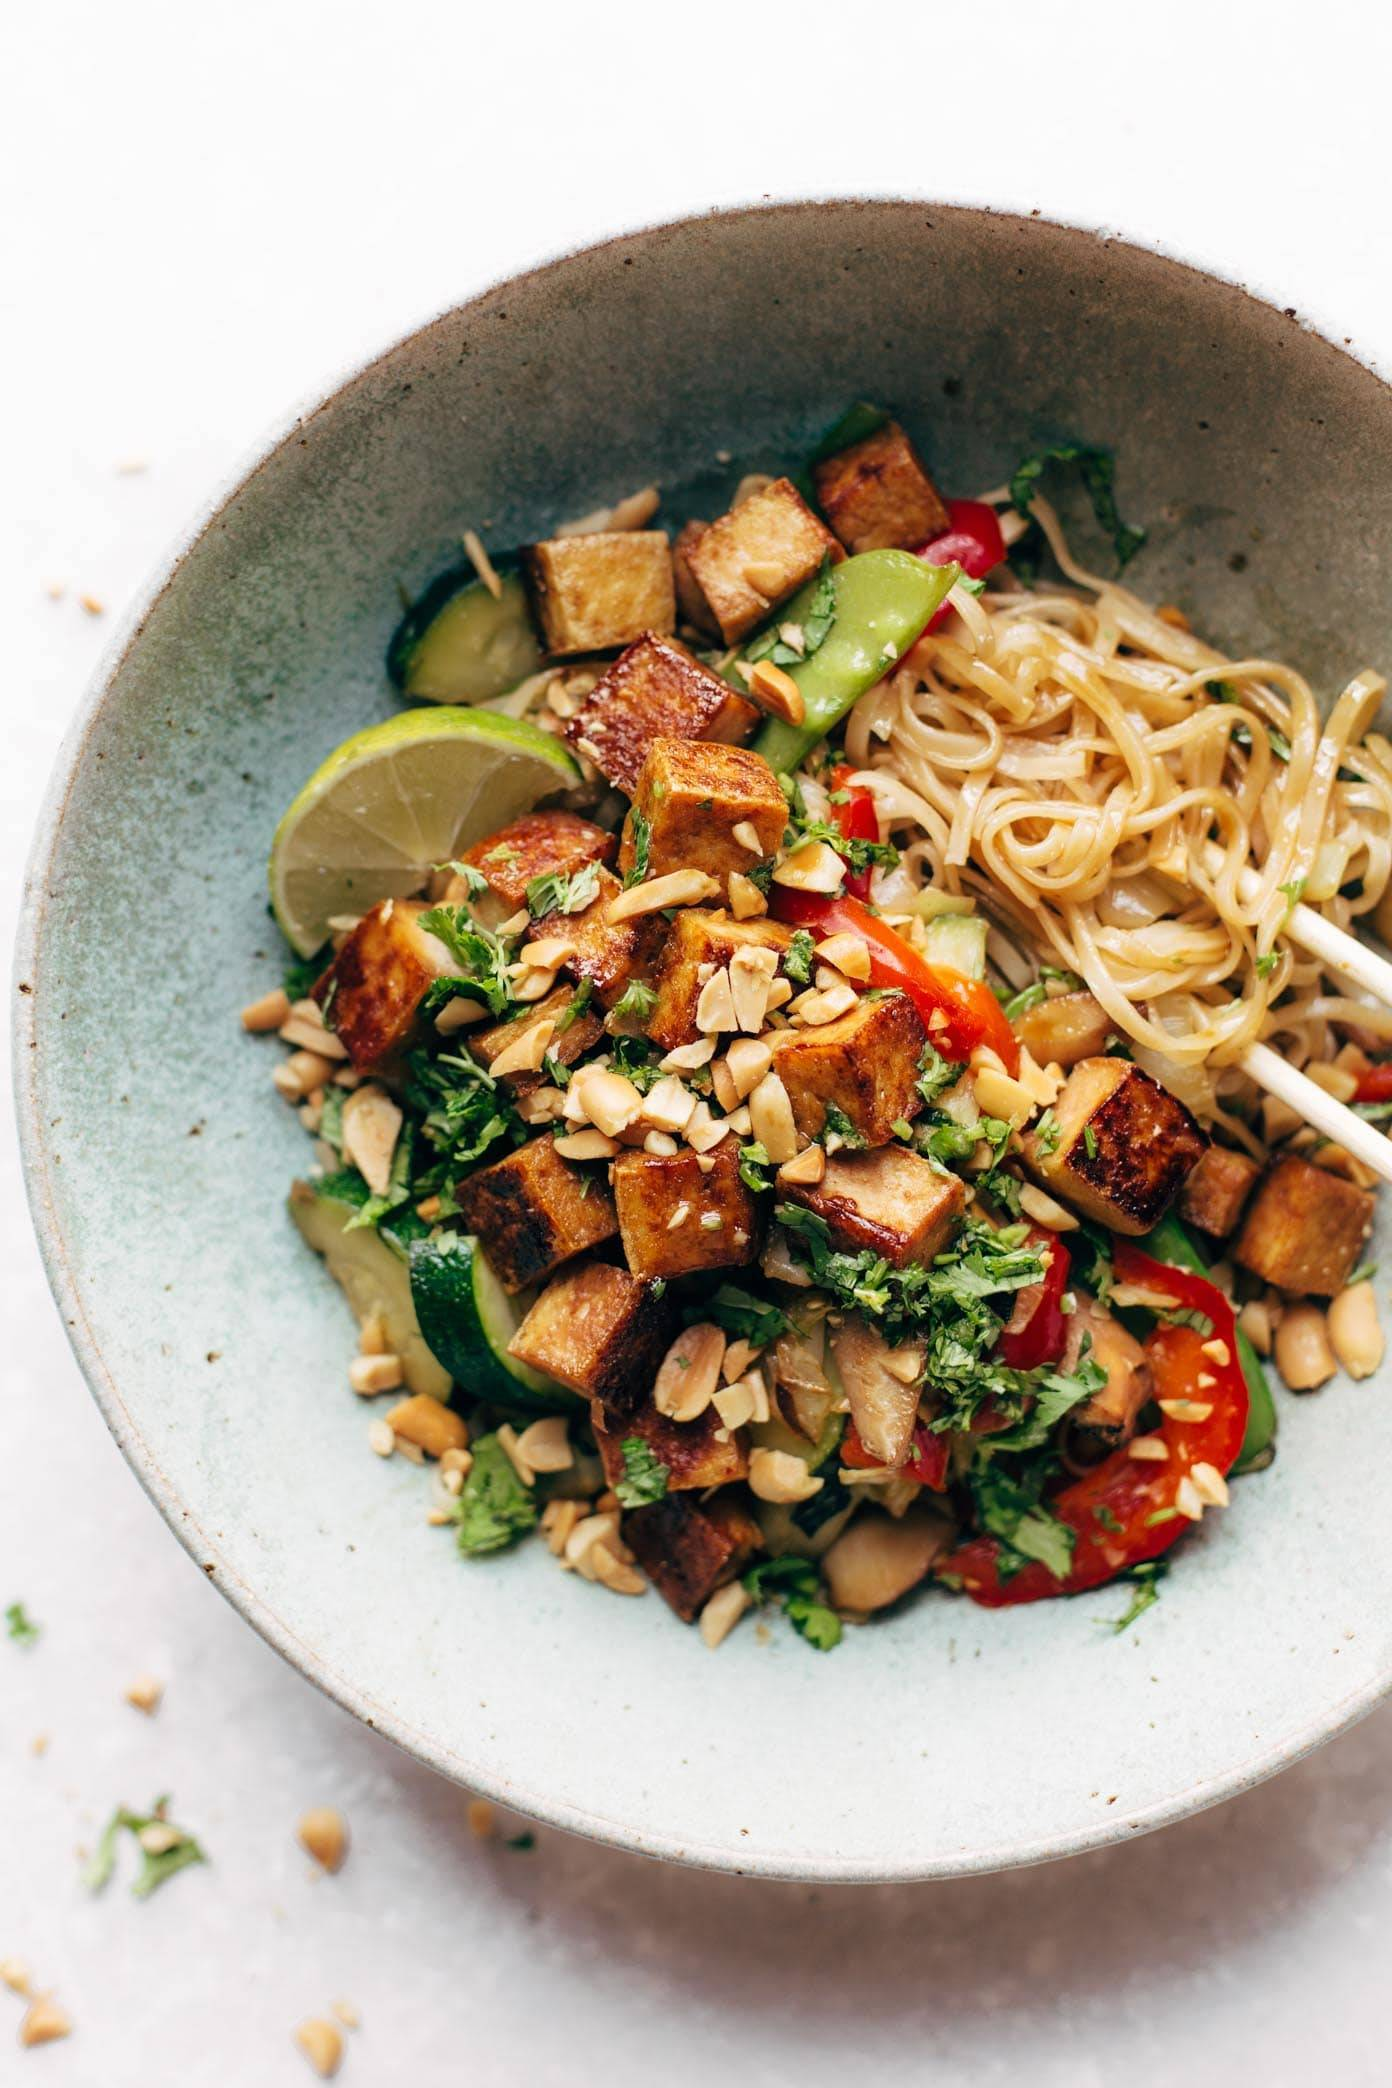 Back Pocket Stir Fry with Noodles - simplicity wins. brown rice noodles with tofu and all kinds of colorful veggies for a quick and easy dinner! vegan, vegetarian. | pinchofyum.com